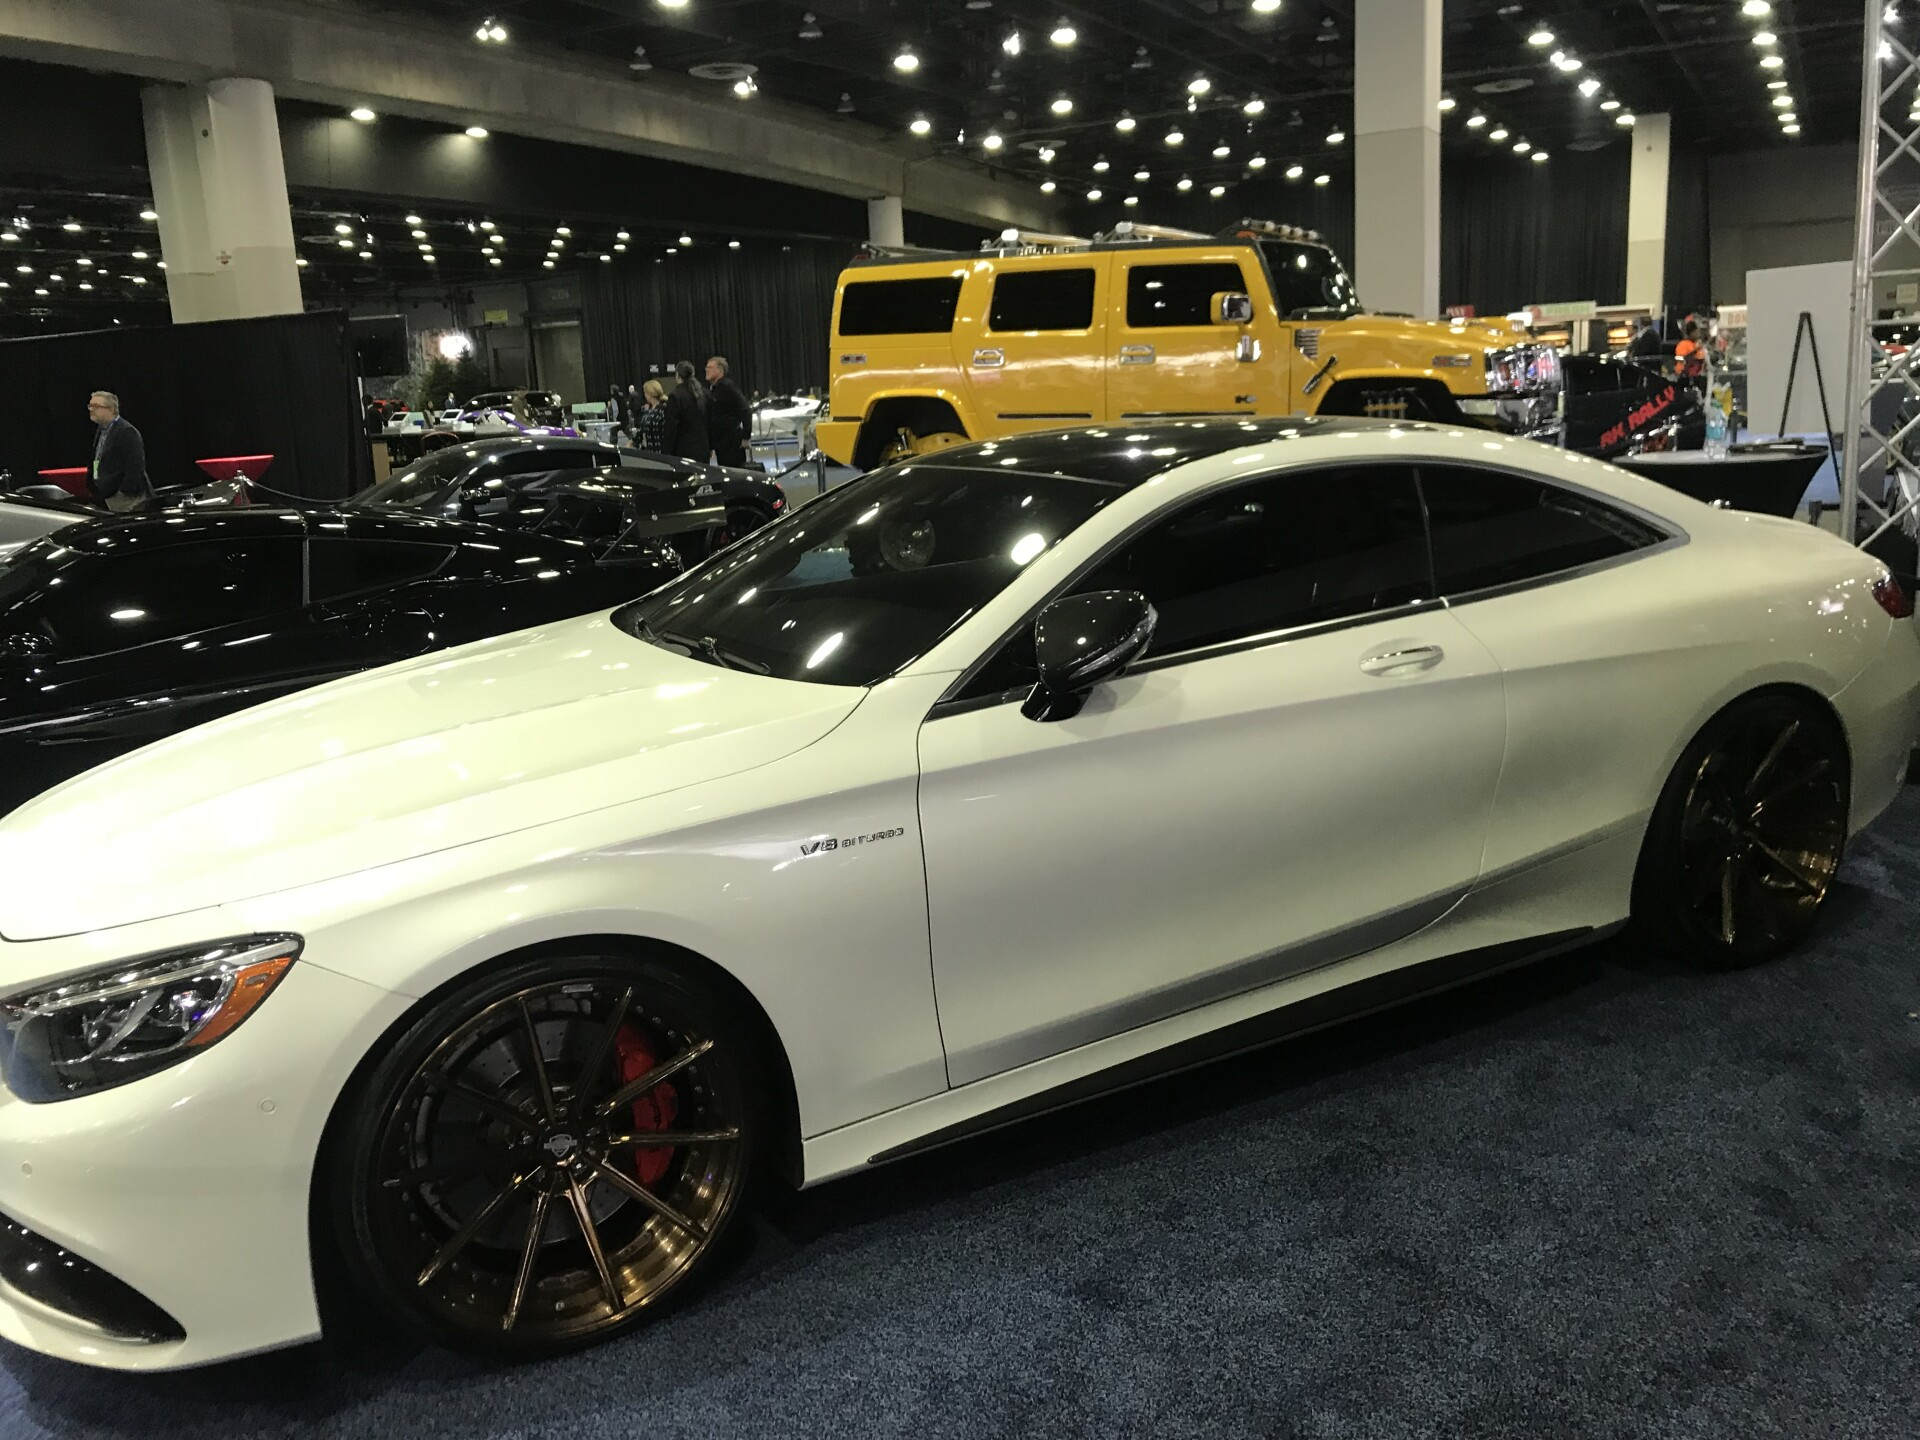 Luxury 2019 Vehicles: Photo Gallery: Luxury Vehicles At The 2019 North American